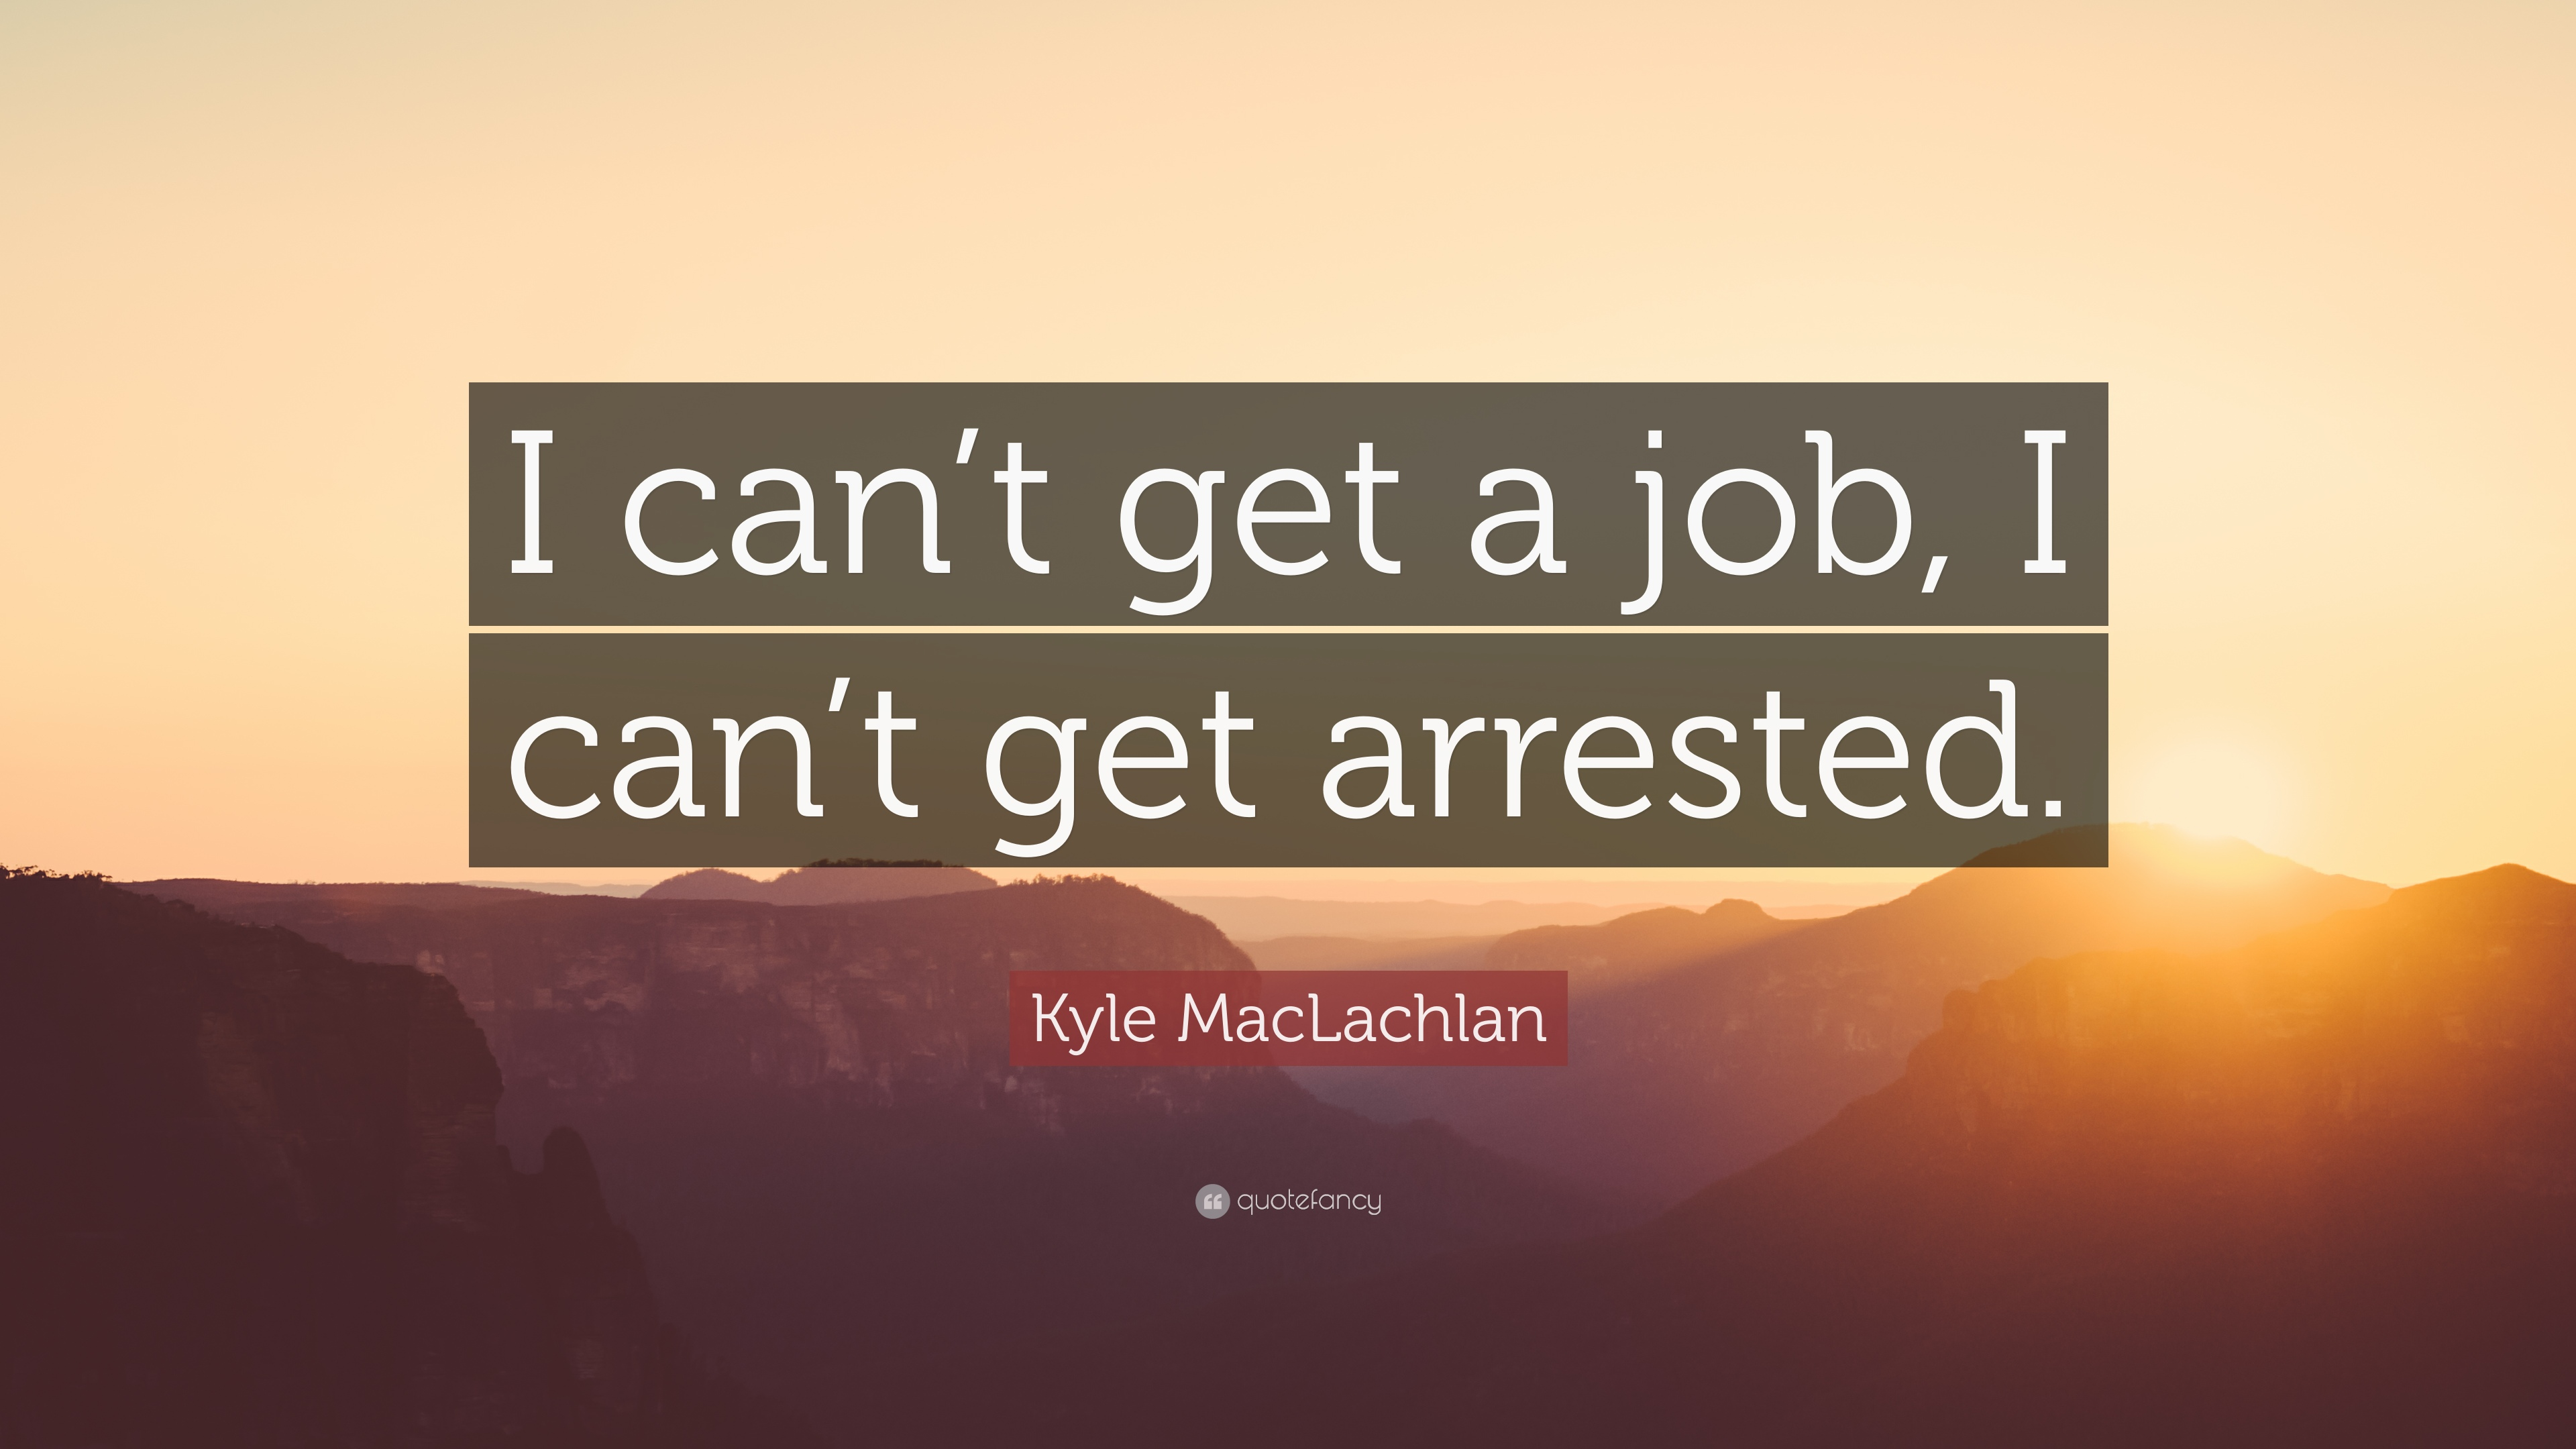 kyle maclachlan quotes quotefancy kyle maclachlan quote i can t get a job i can